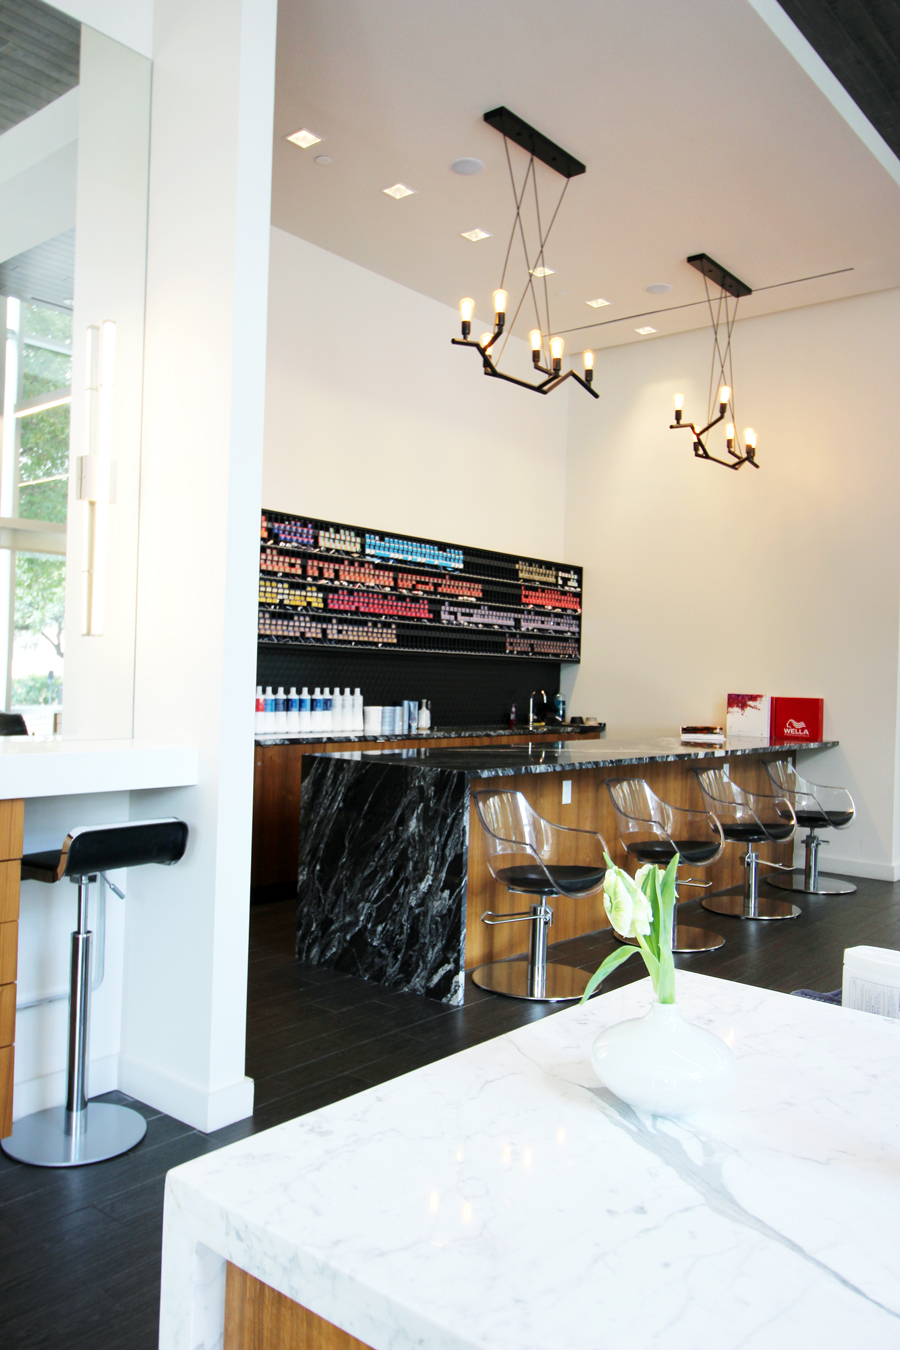 FTT-NAAVA-SALON-6TH-STREET-10